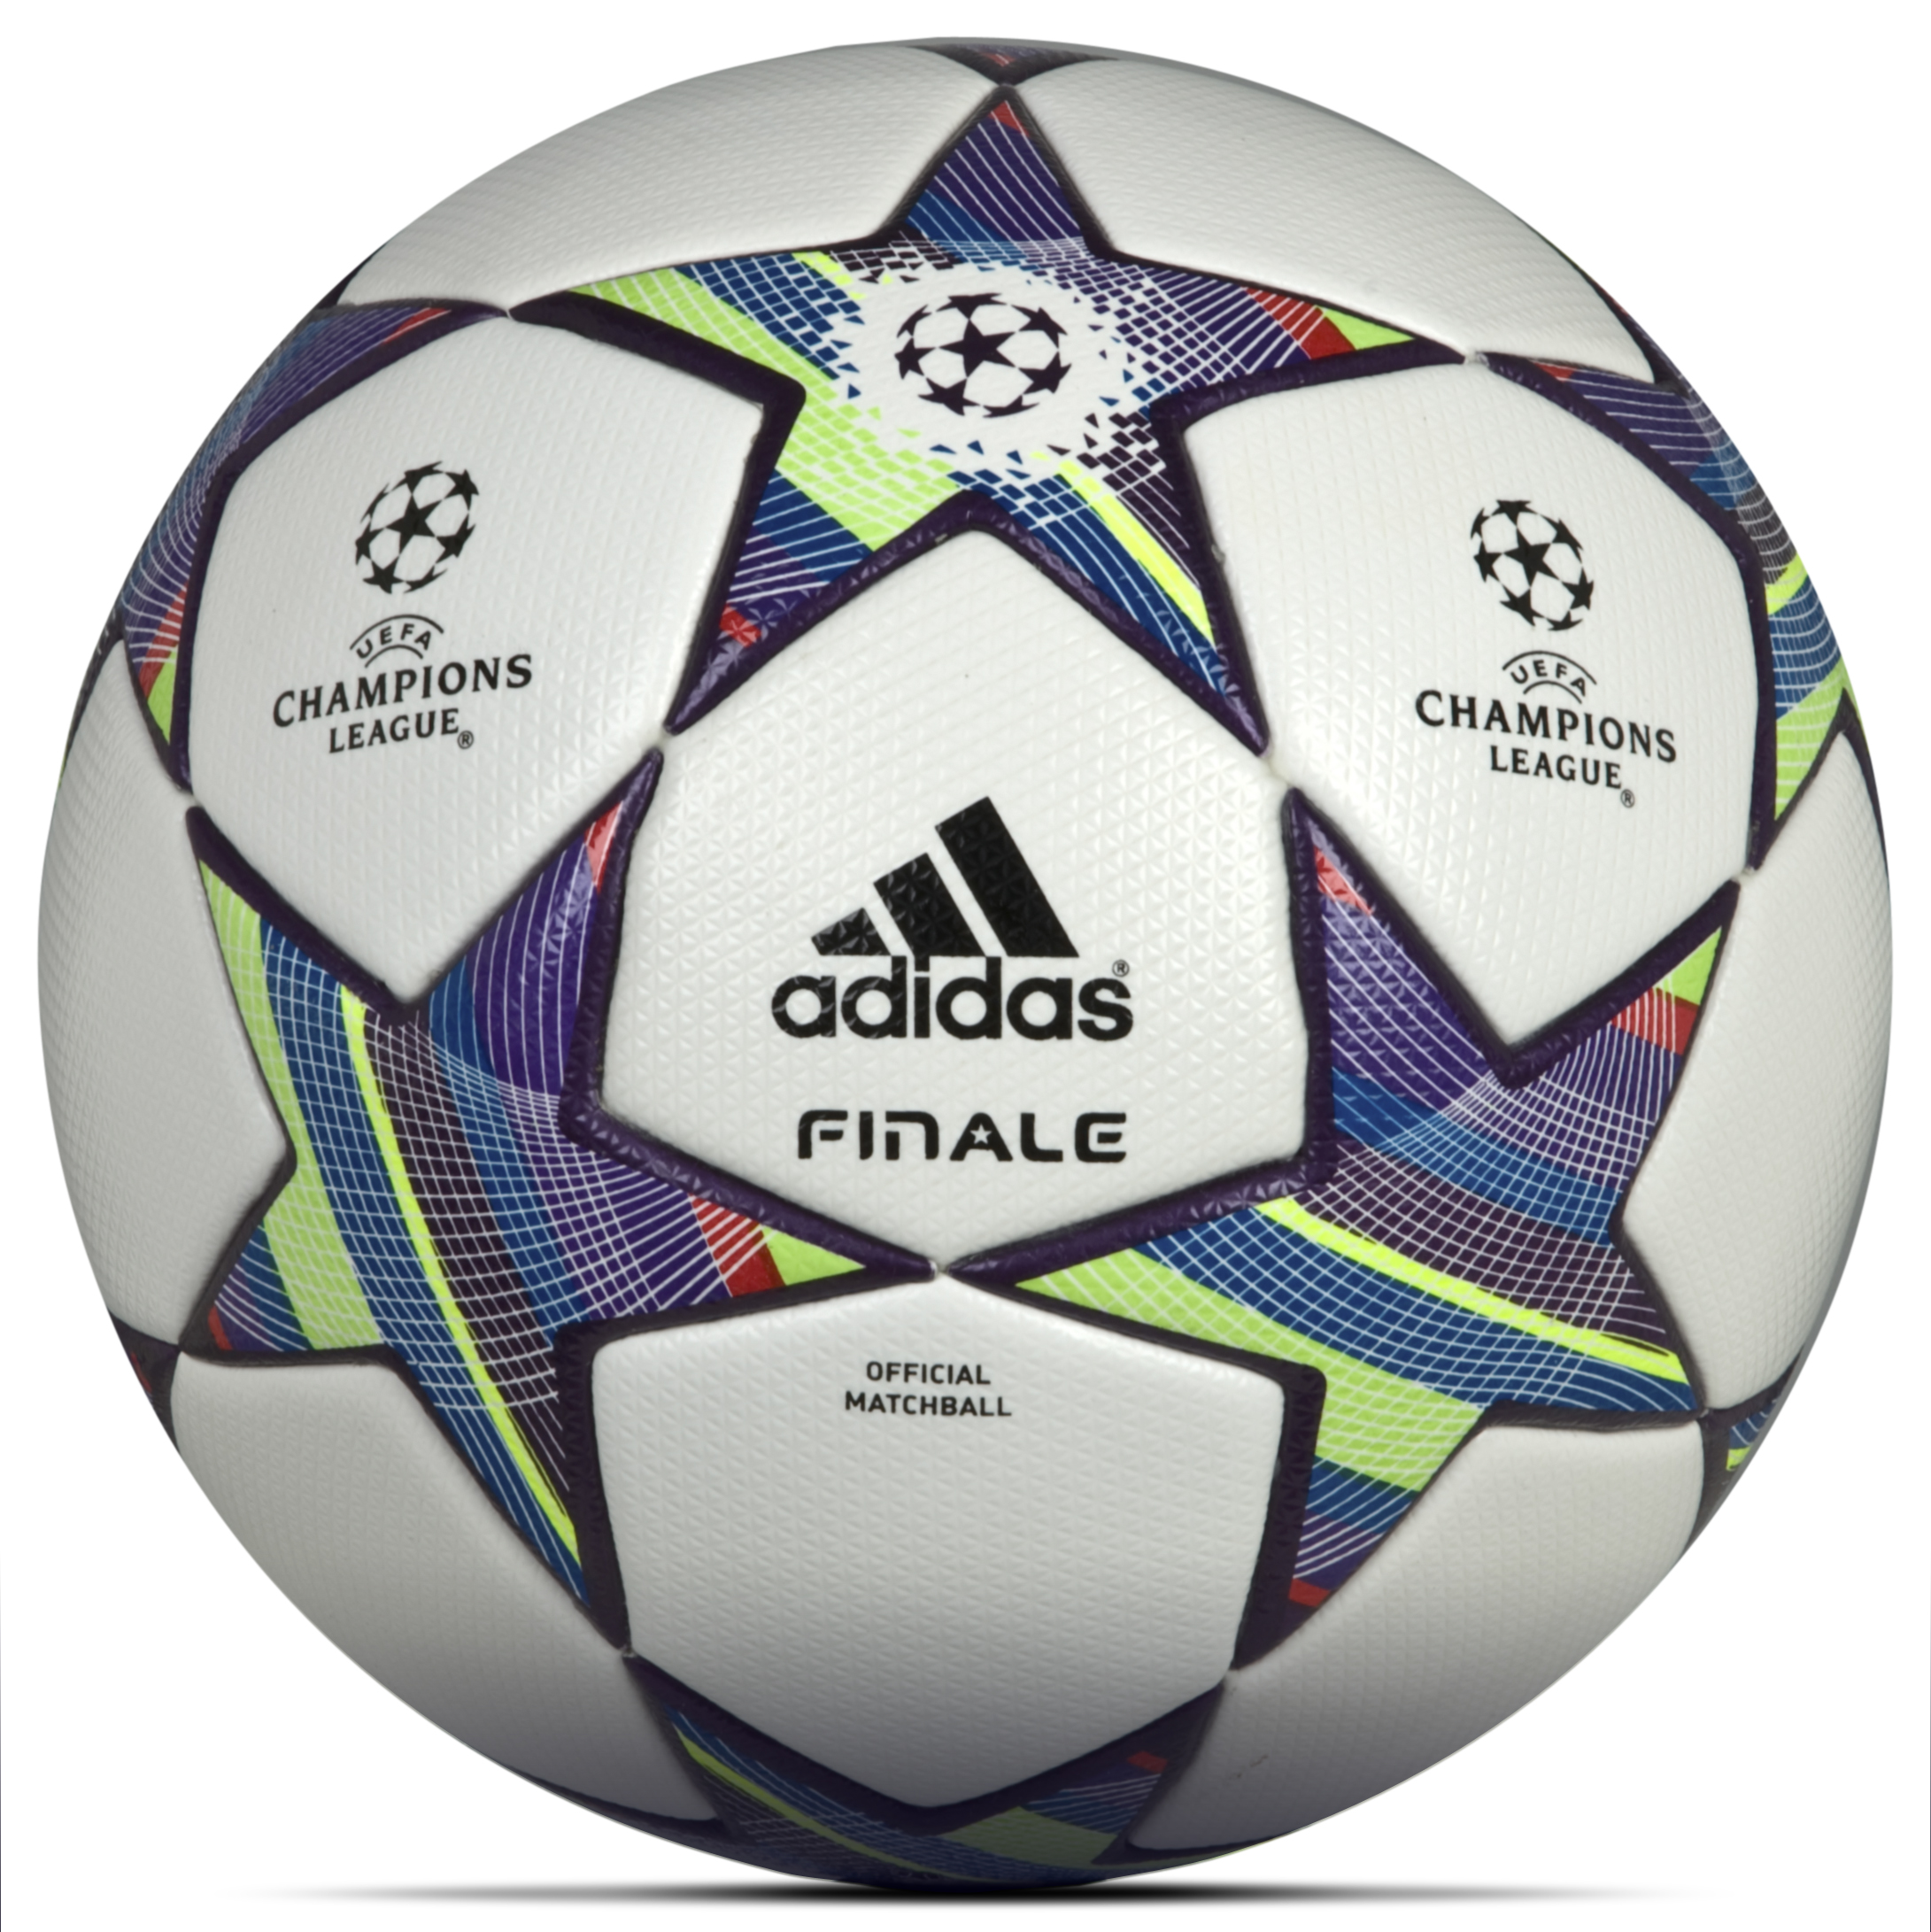 Baln partido oficial UEFA Champions League Final 11 adidas - Blanco/esmalte lila